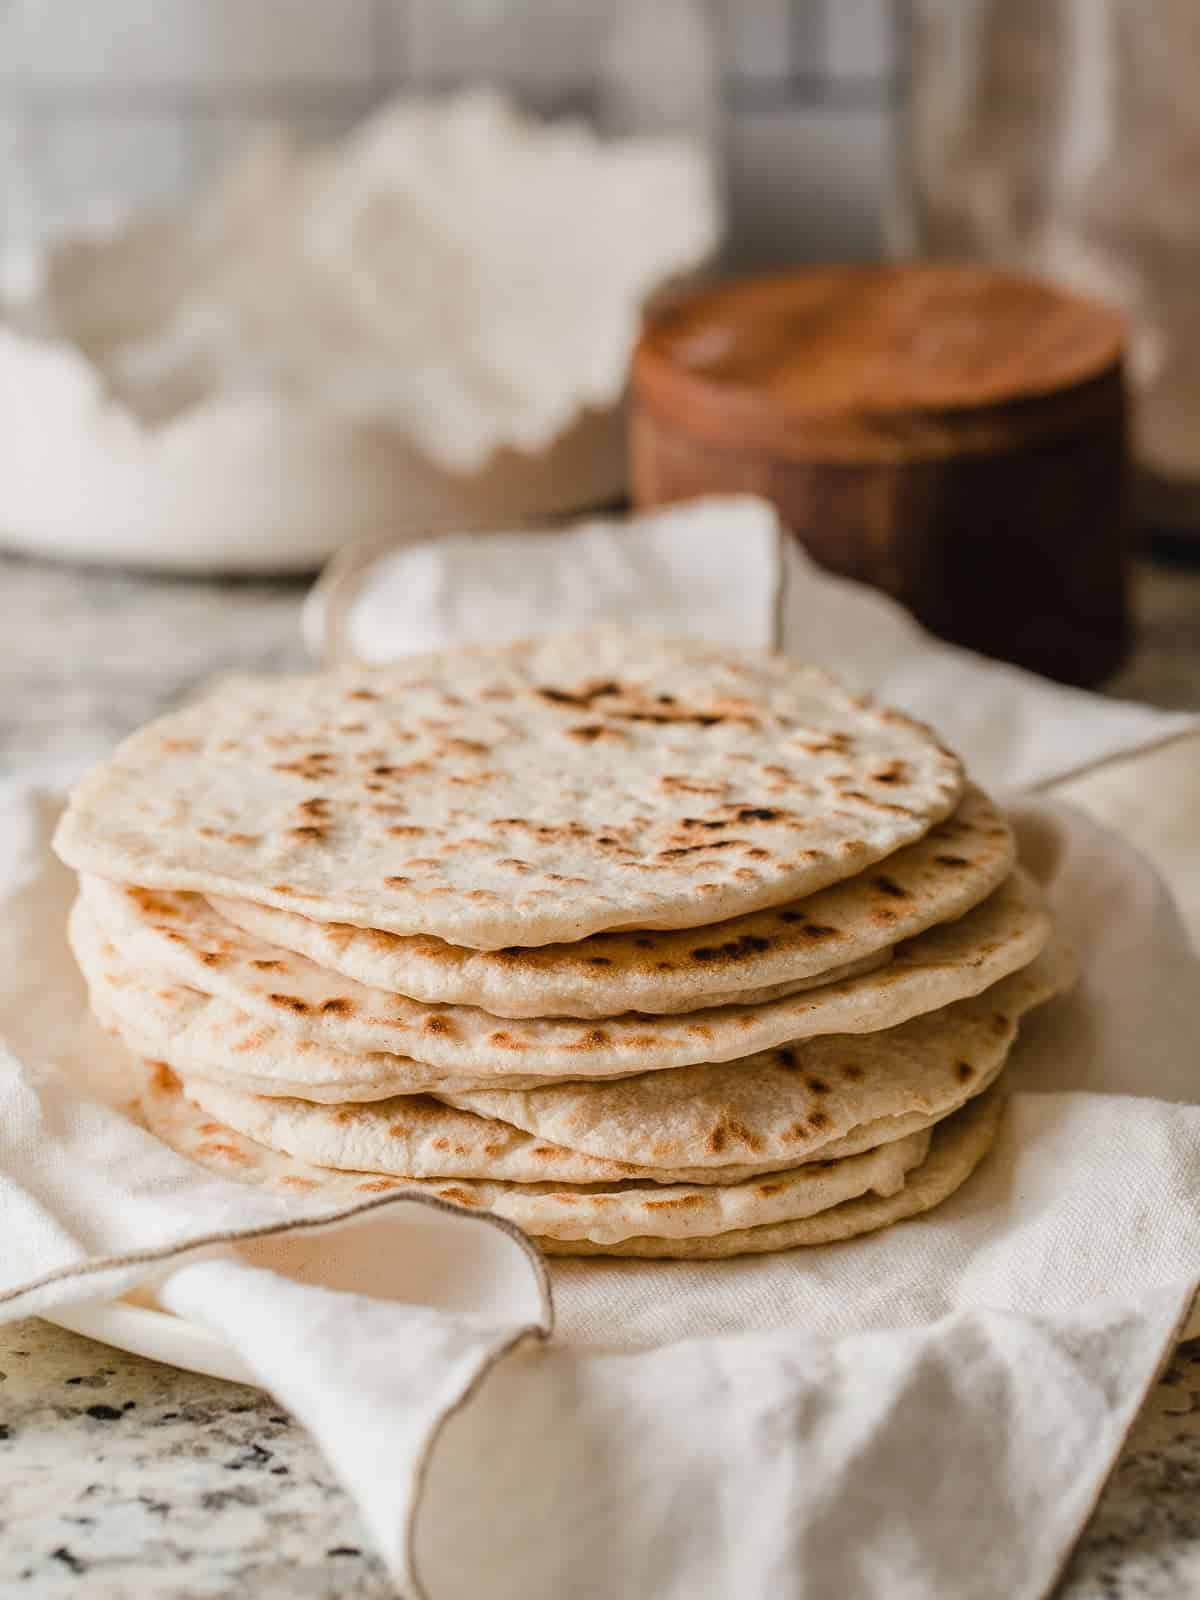 Sourdough tortillas in a stack on a counter.